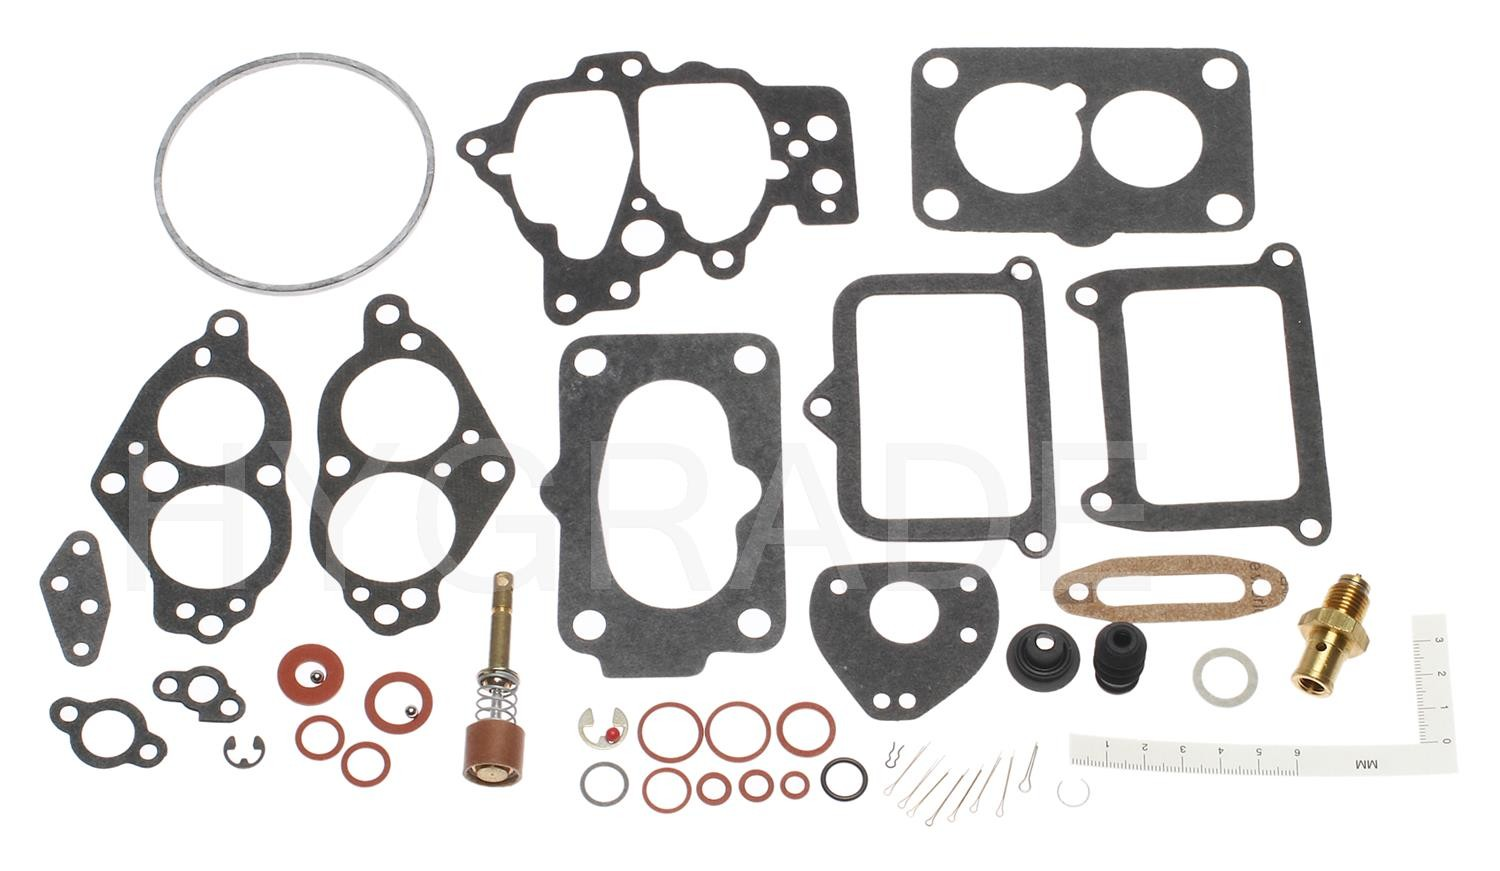 1973 Nissan 610 Carburetor Repair Kit Hygrade Carb 734